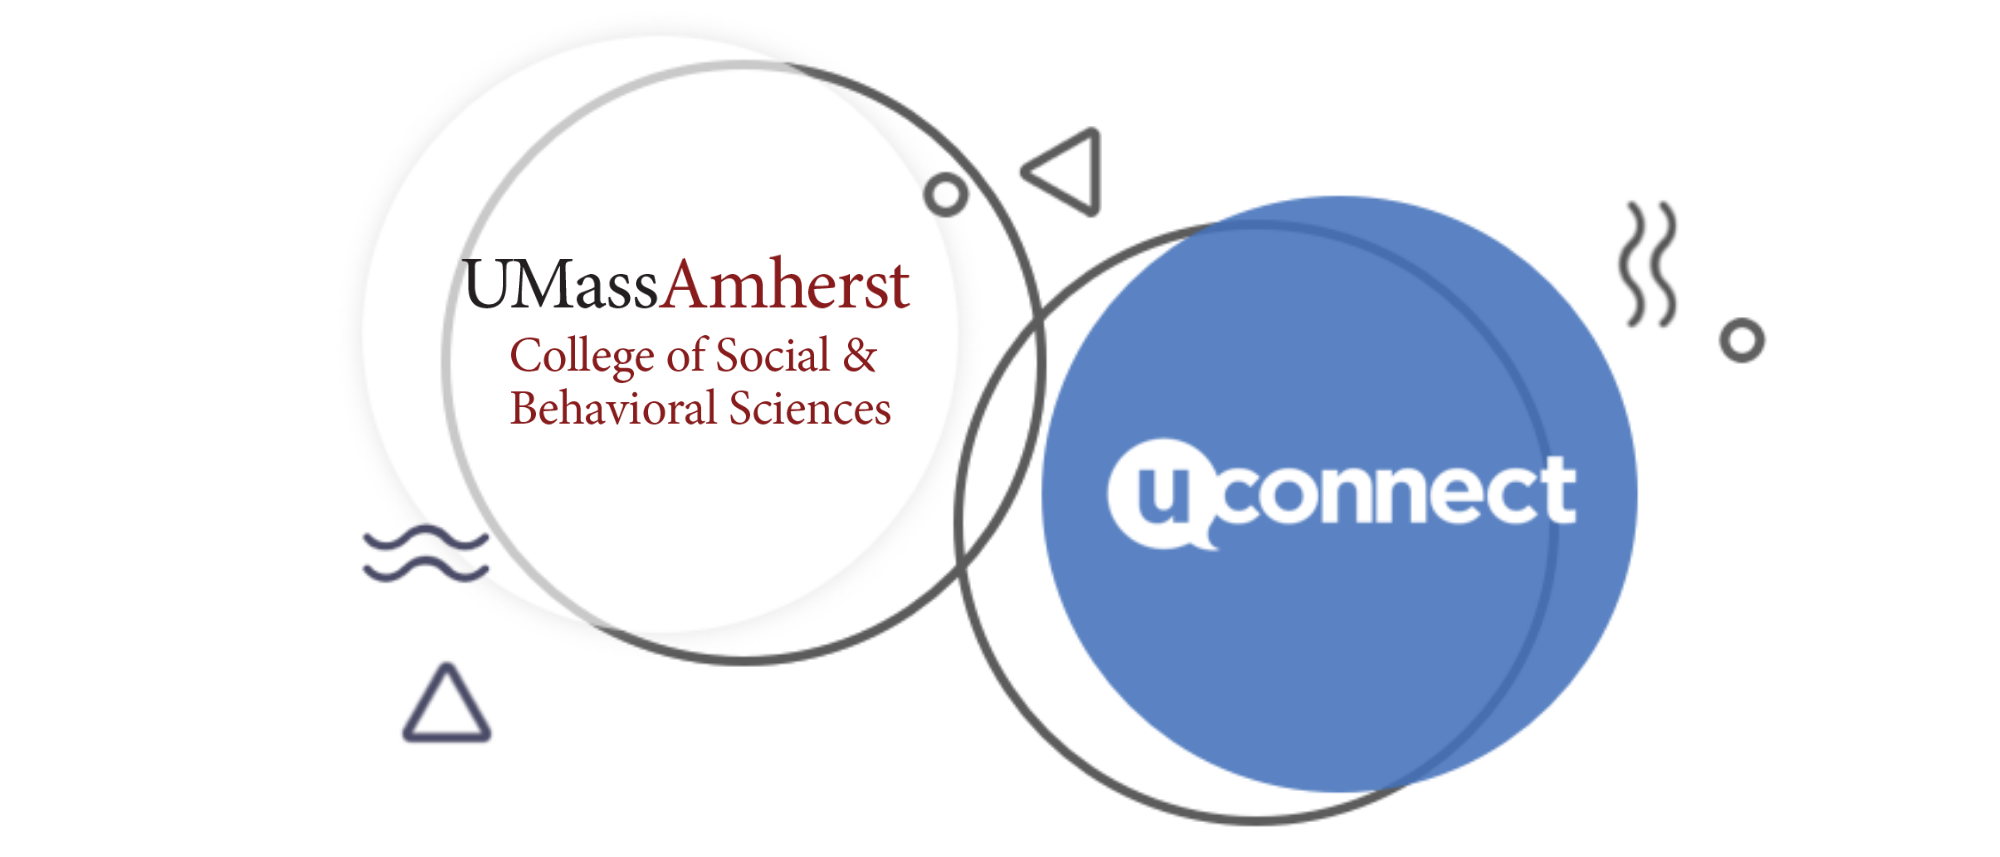 Holistic Career, Academic, and Experiential Learning Support is Now Available to Students Anytime, Anywhere at UMass Amherst's College of Social and Behavioral Sciences